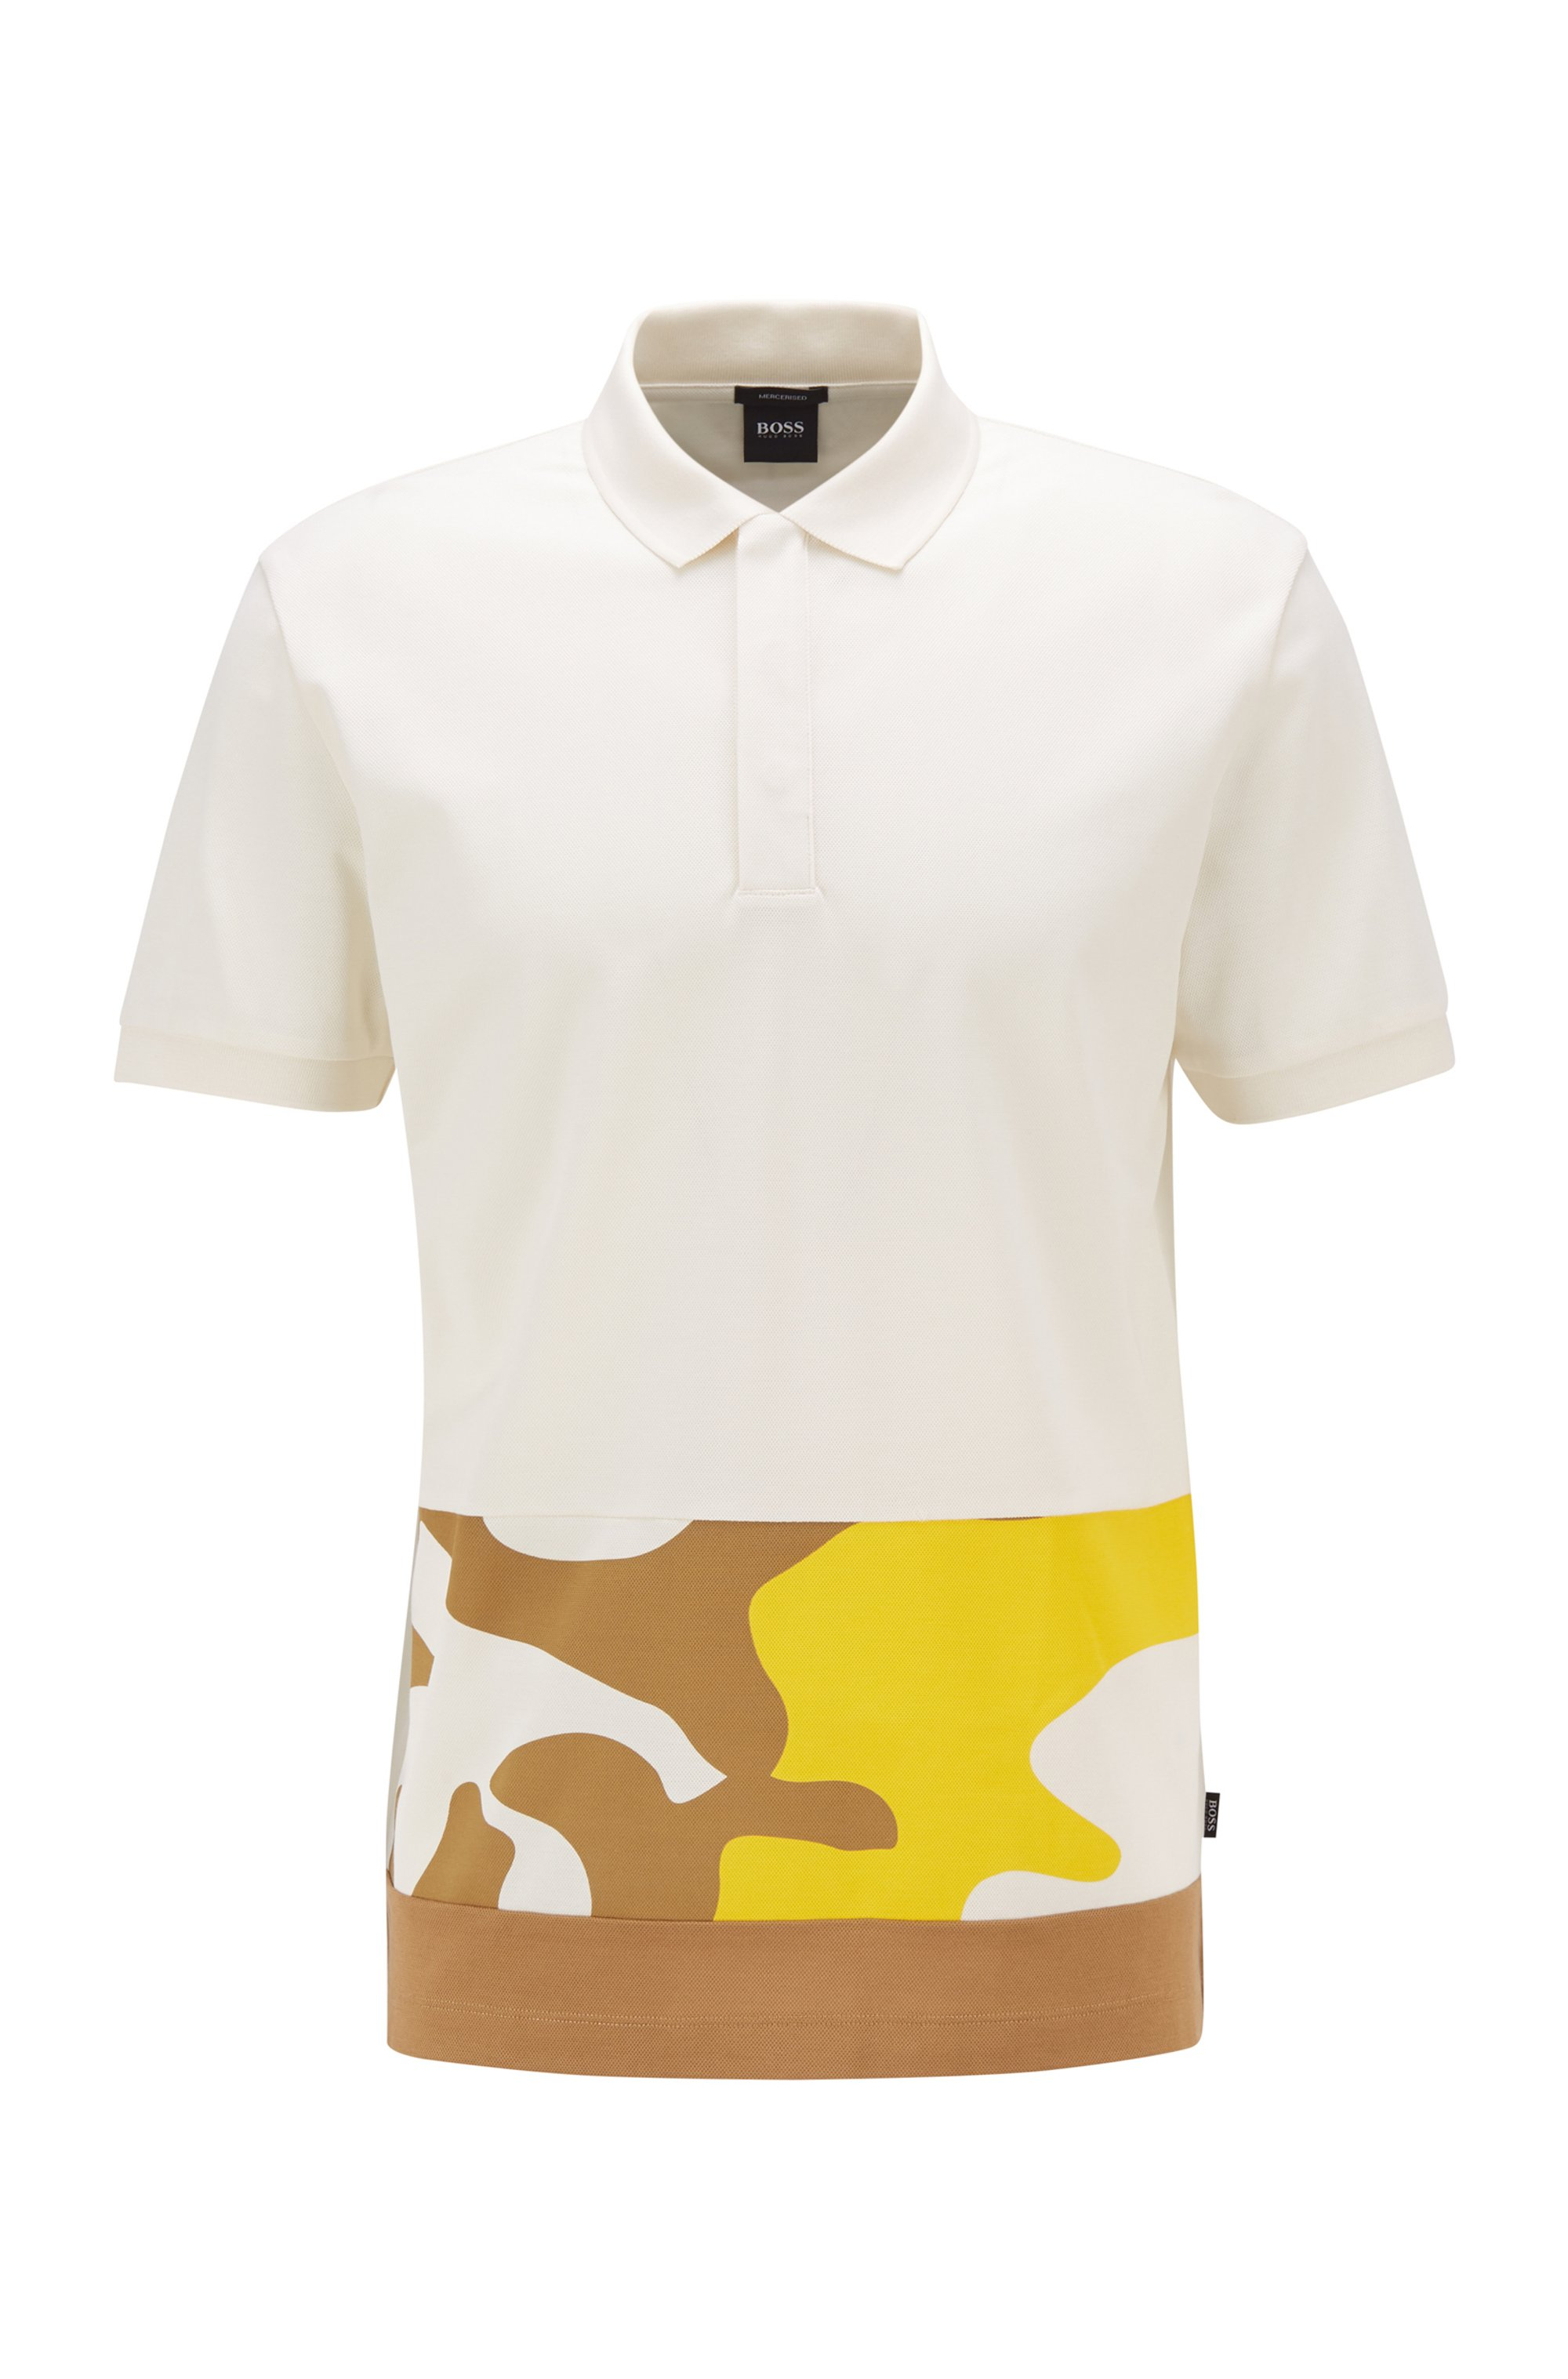 Cotton polo shirt with camouflage-print panel, White Patterned